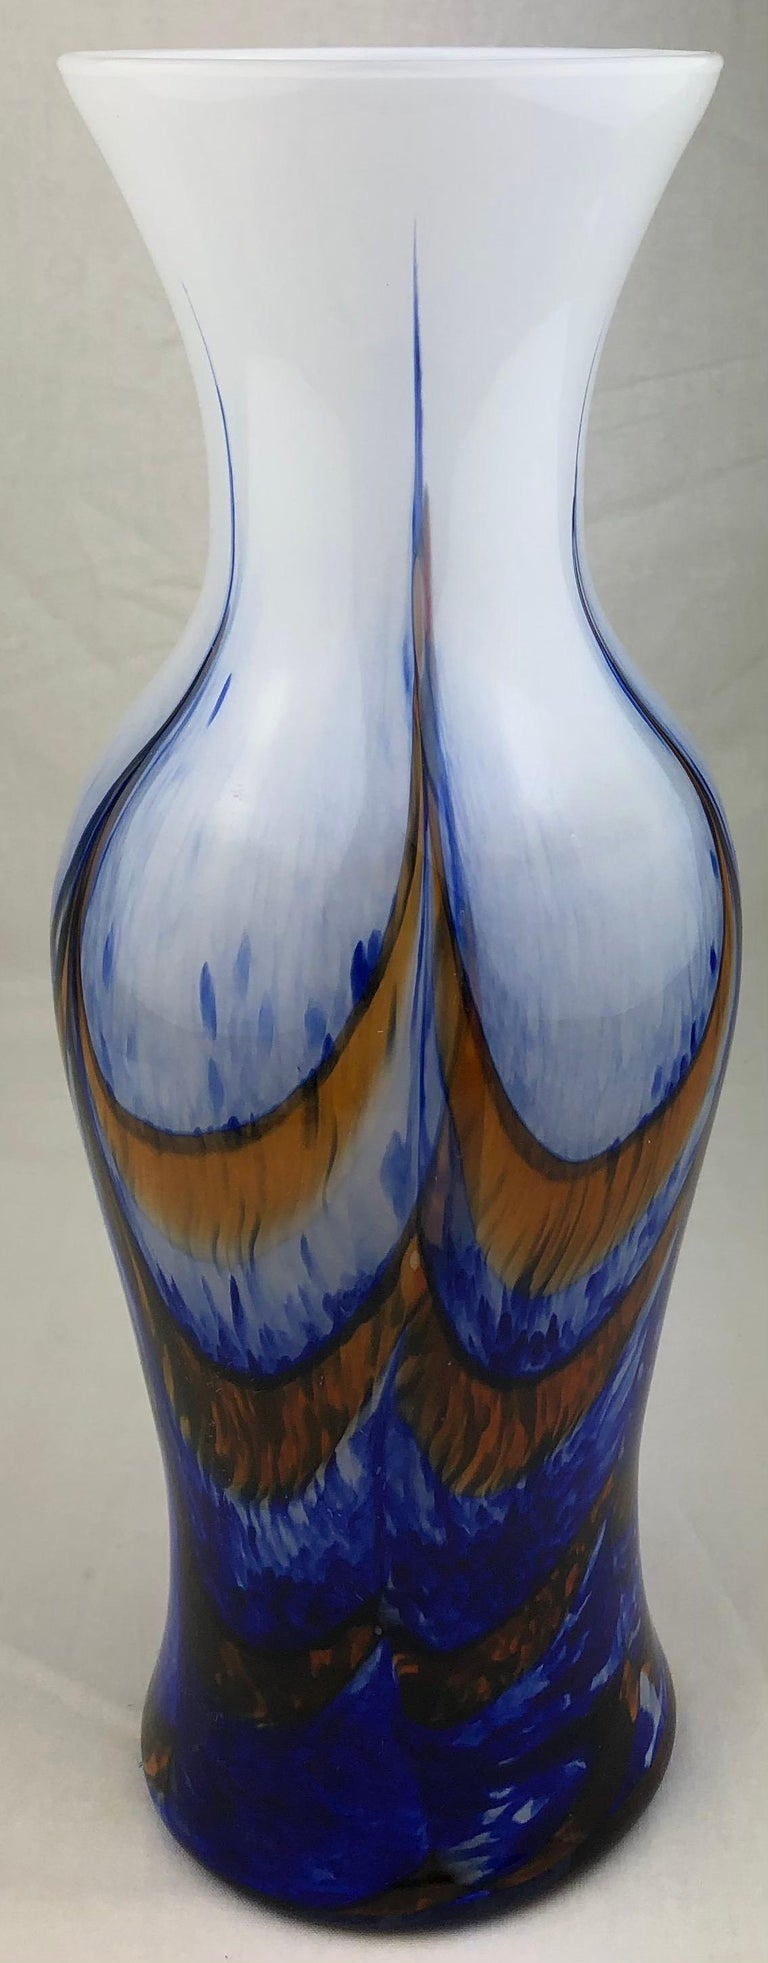 Tall French Midcentury Art Glass Vase Attributed to Schneider Glassworks In Good Condition For Sale In Arles, FR